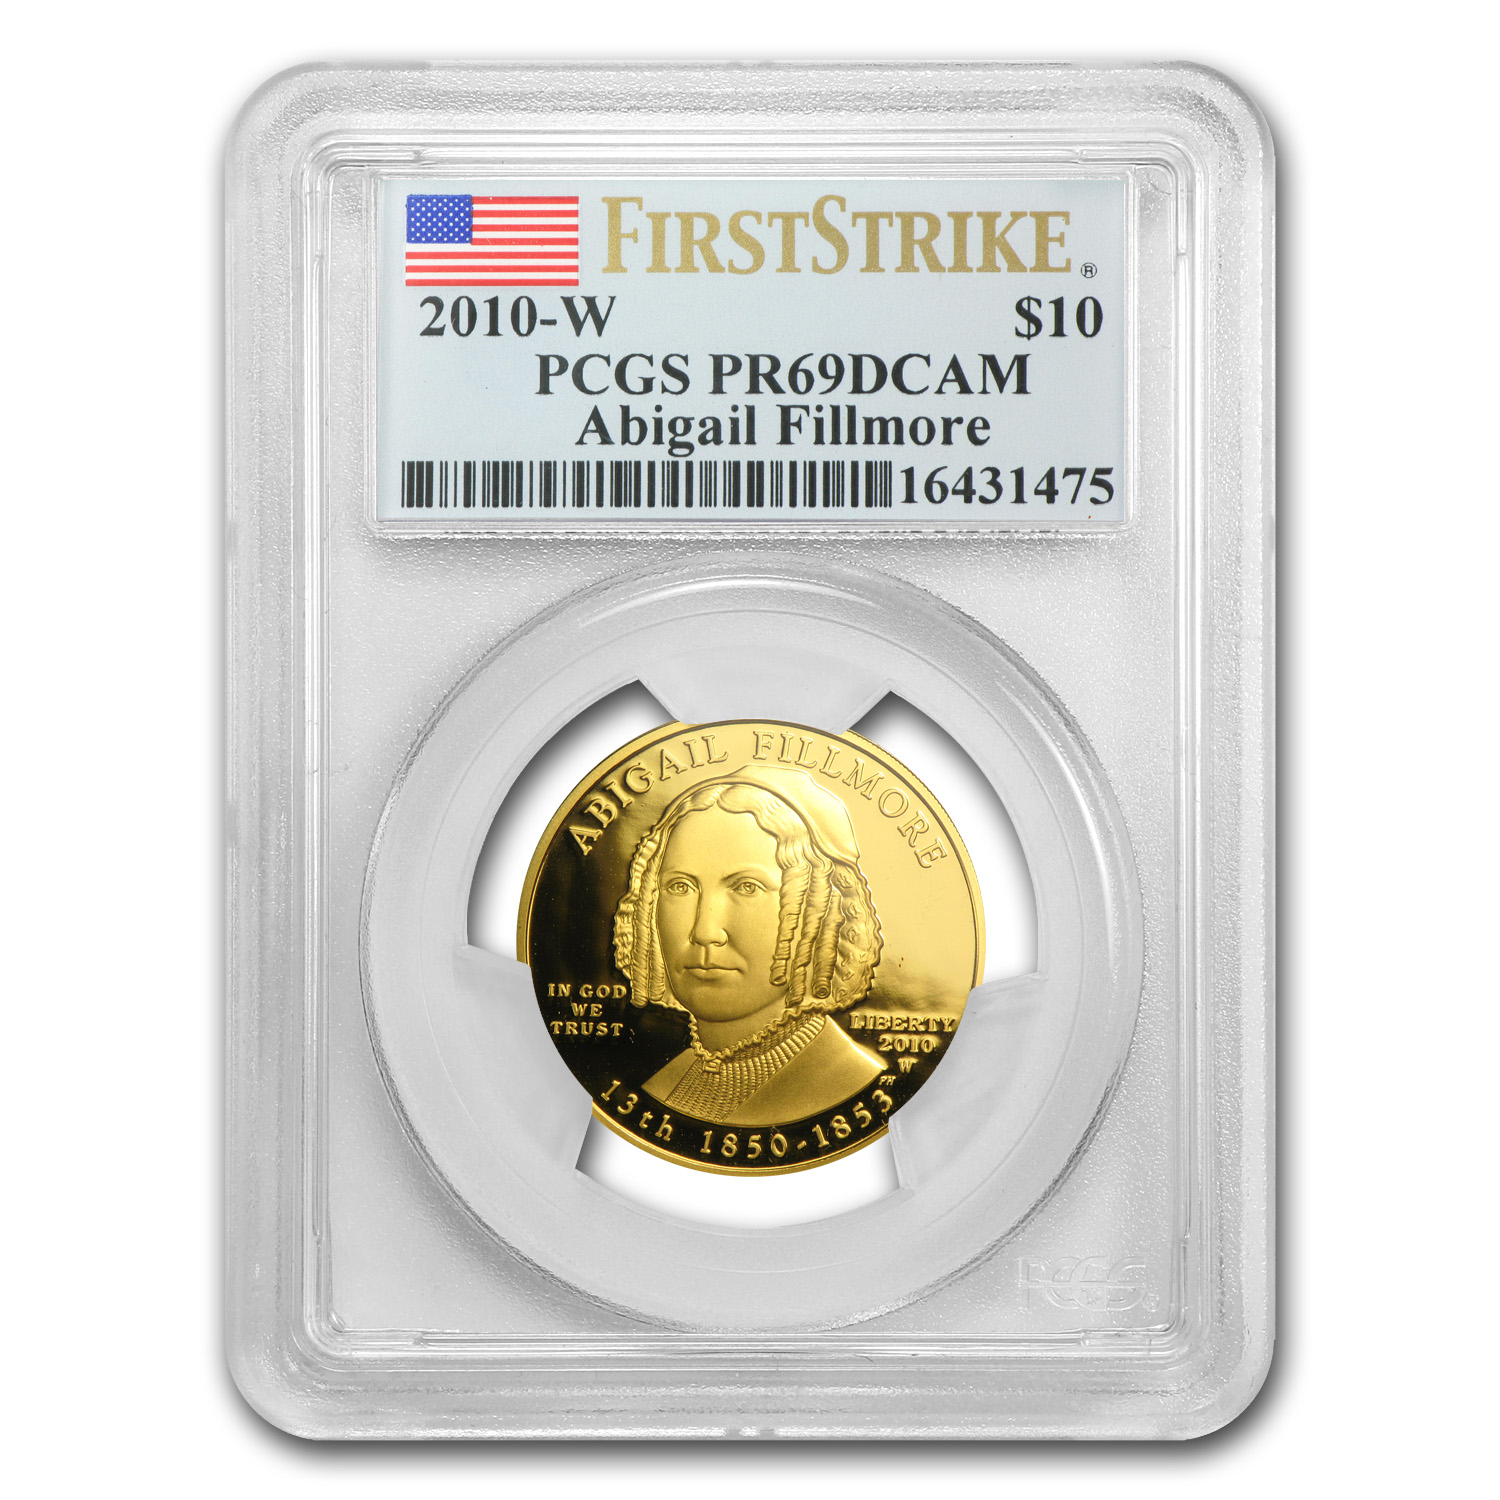 2010-W 1/2 oz Proof Gold Abigail Fillmore PR-69 PCGS (FS)